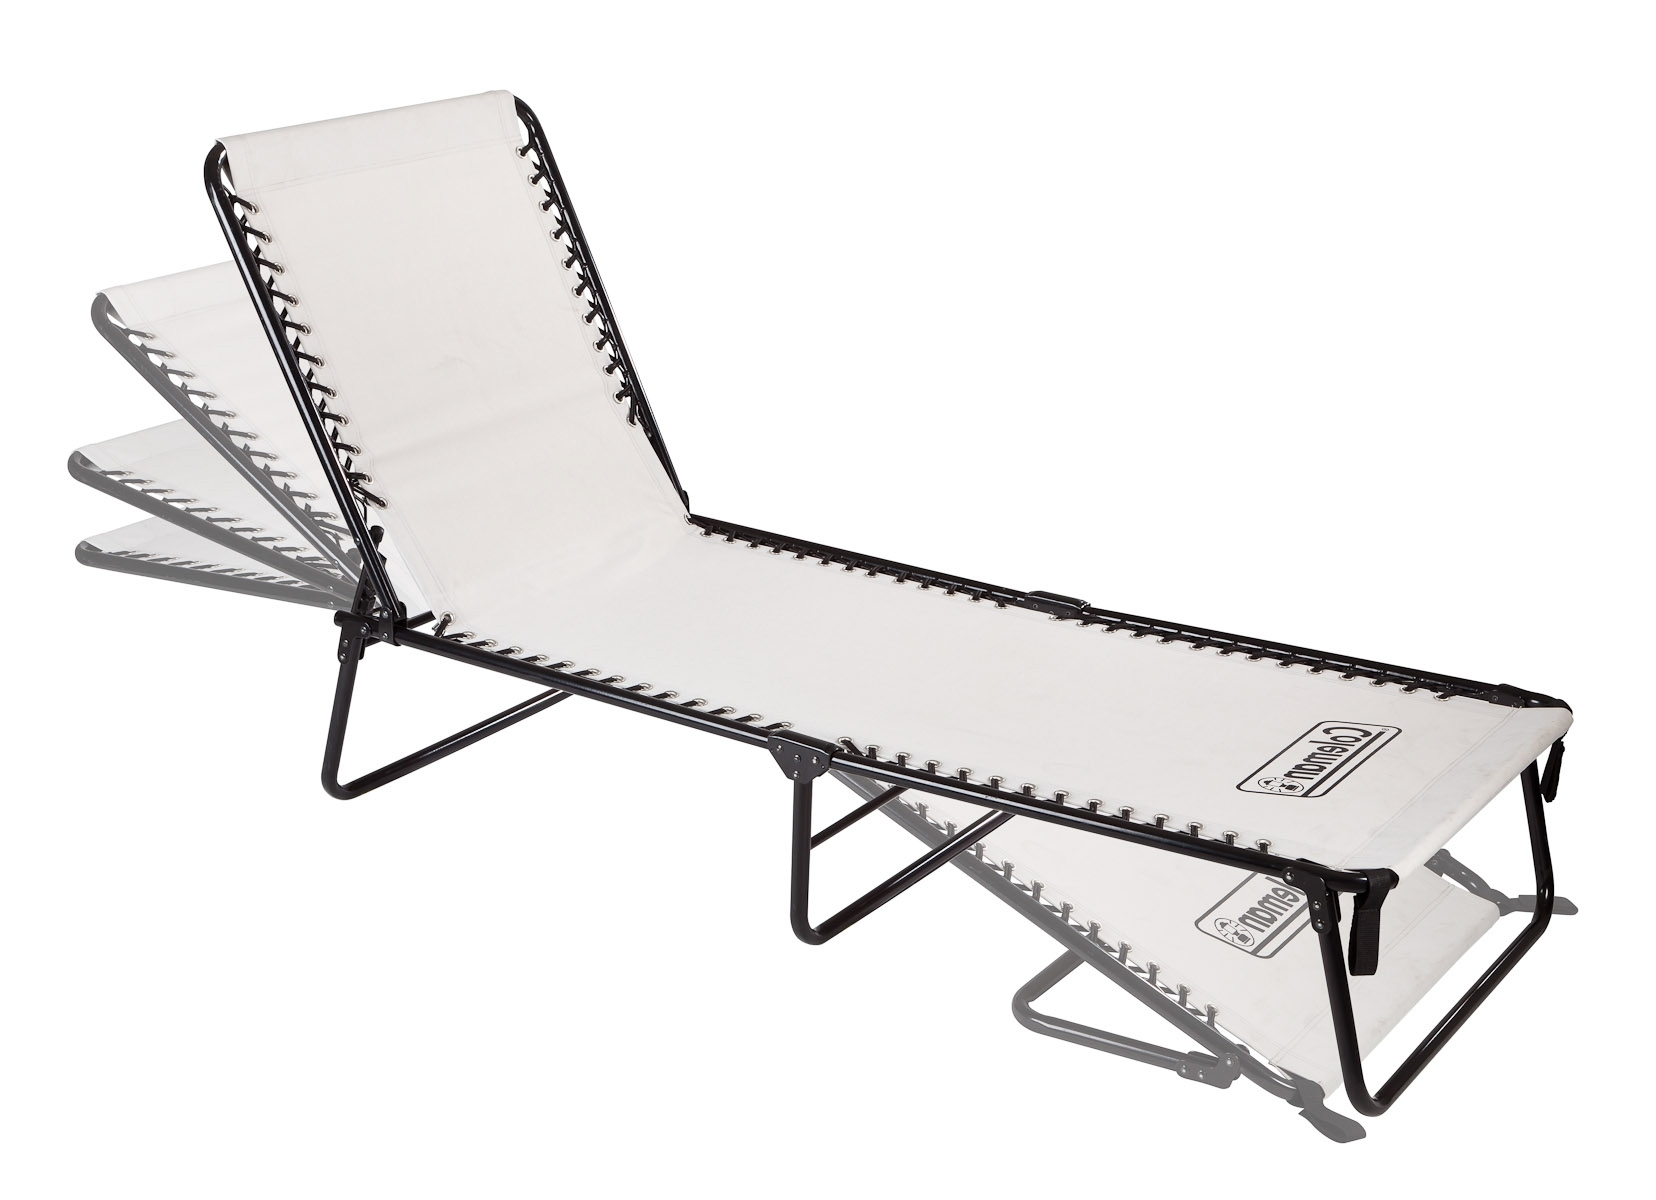 Most Popular Outdoor Folding Chaise Lounges Regarding Fold Up Chaise Lounge Chairs • Lounge Chairs Ideas (View 11 of 15)